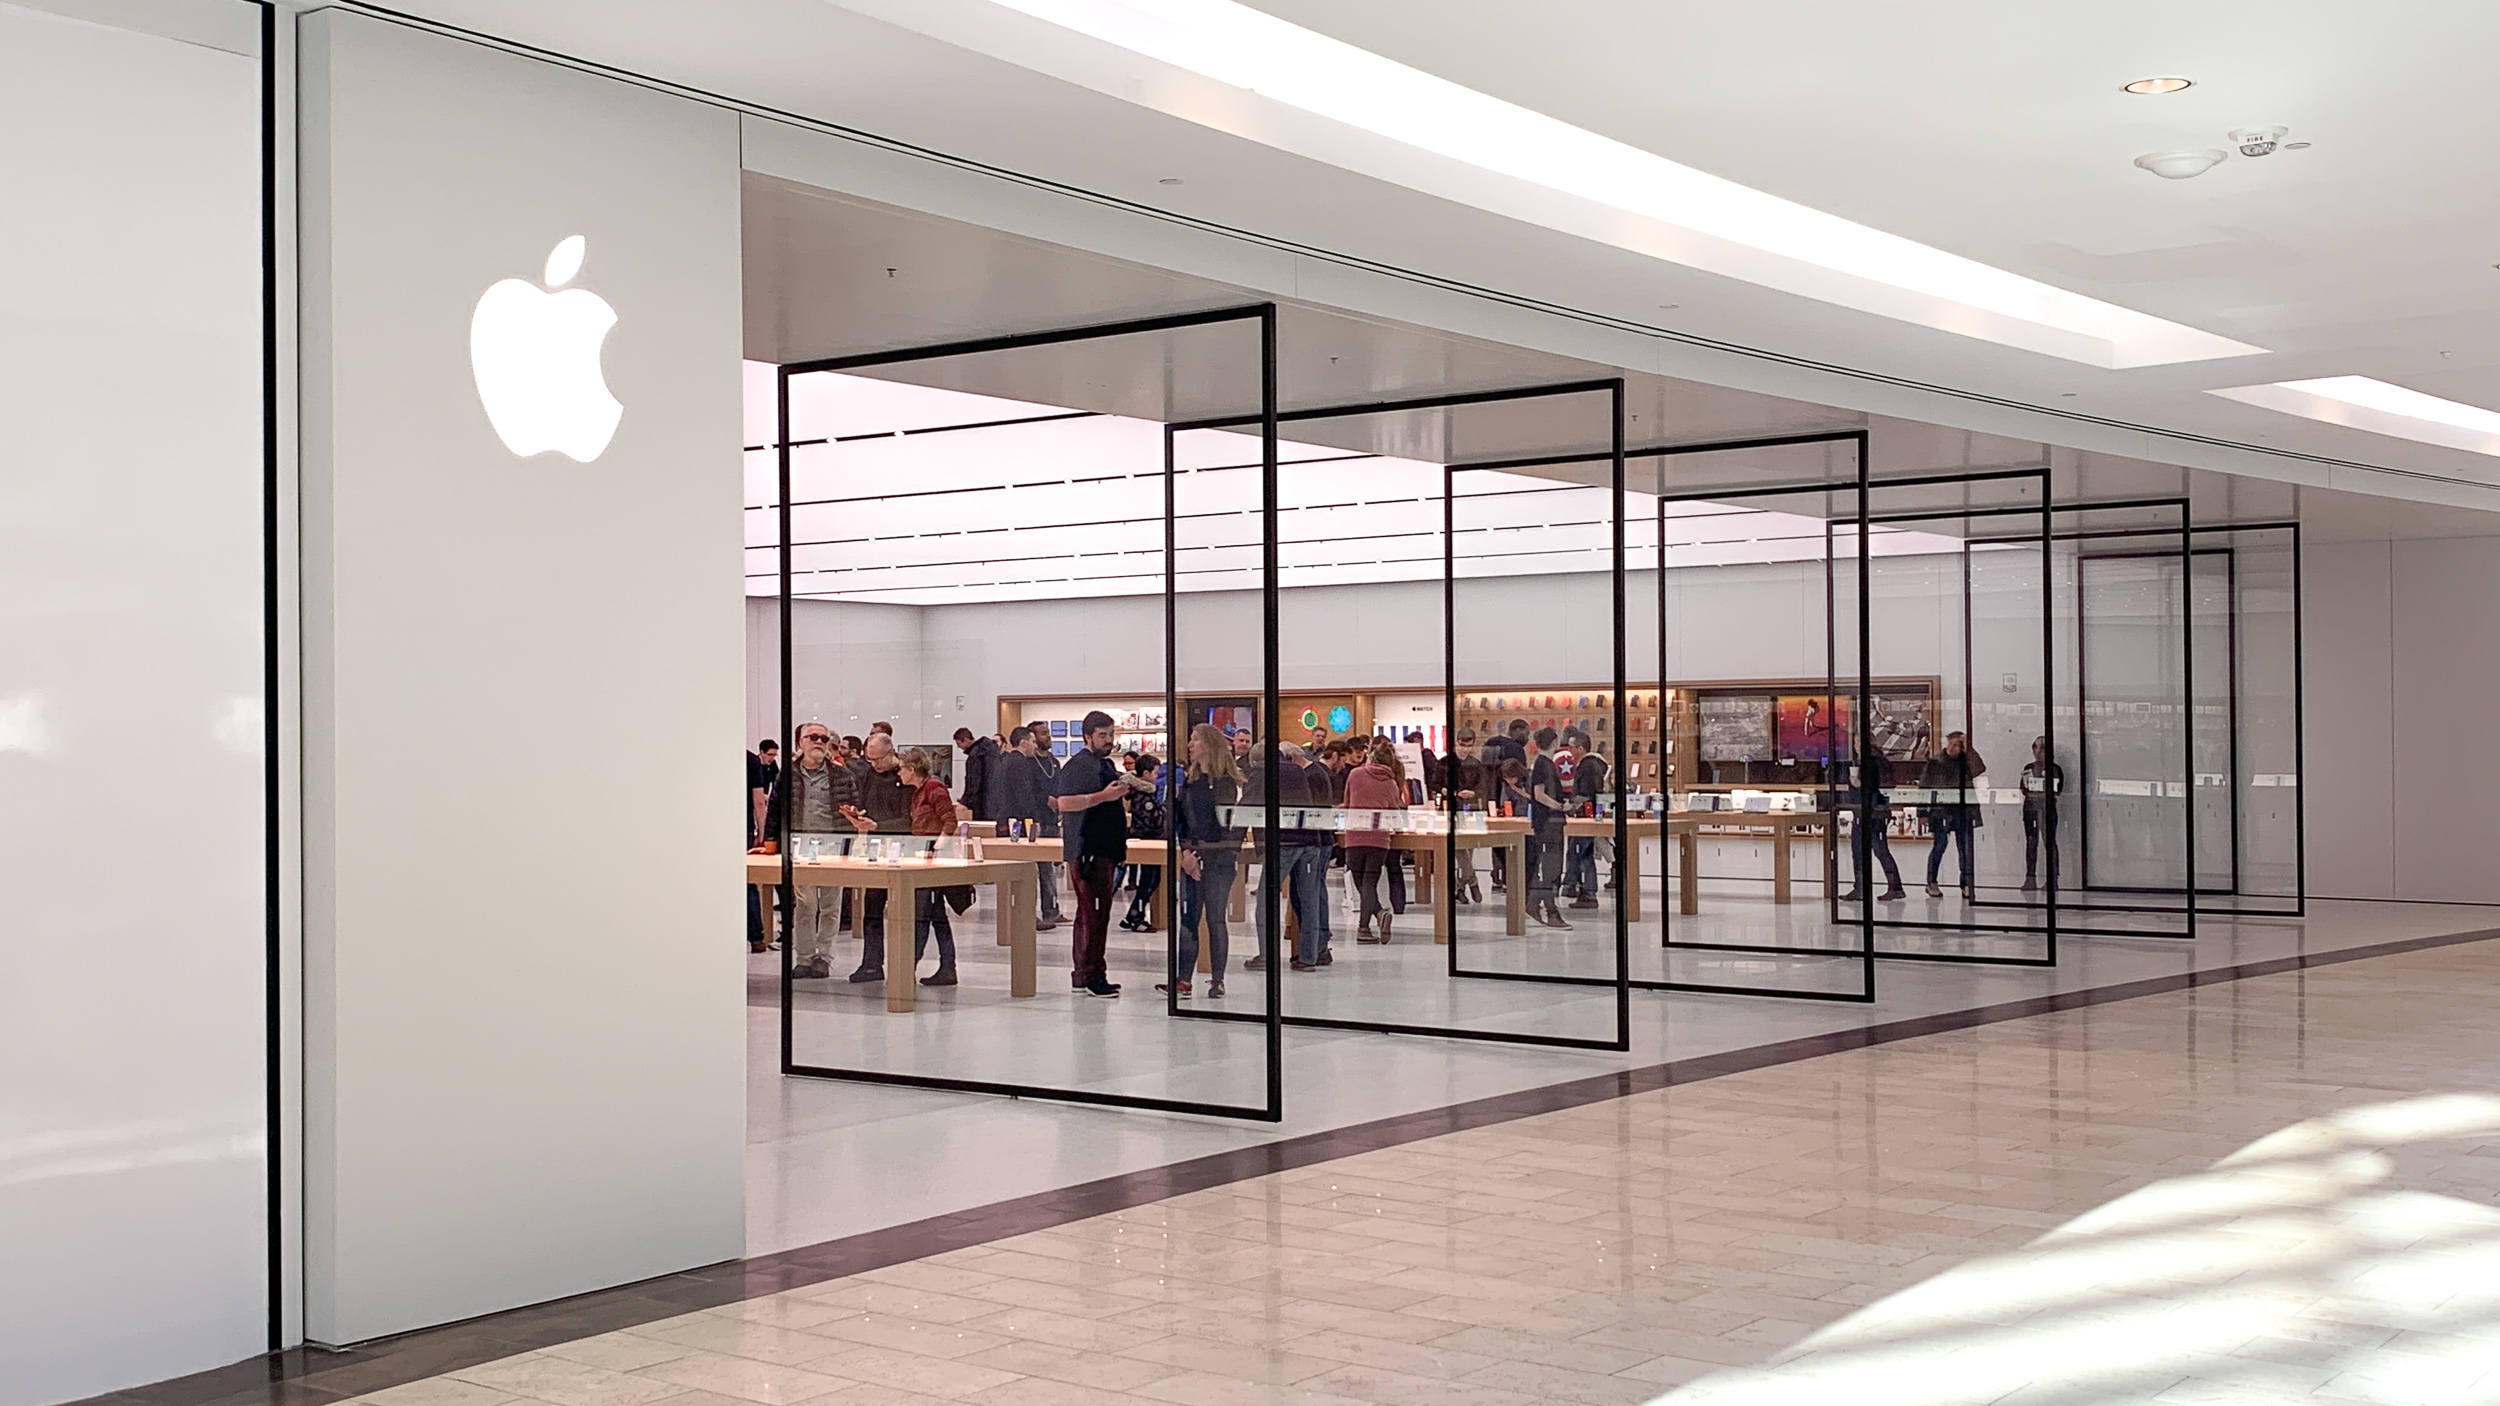 Gallery: Natick Mall Apple Store reopens with updated design